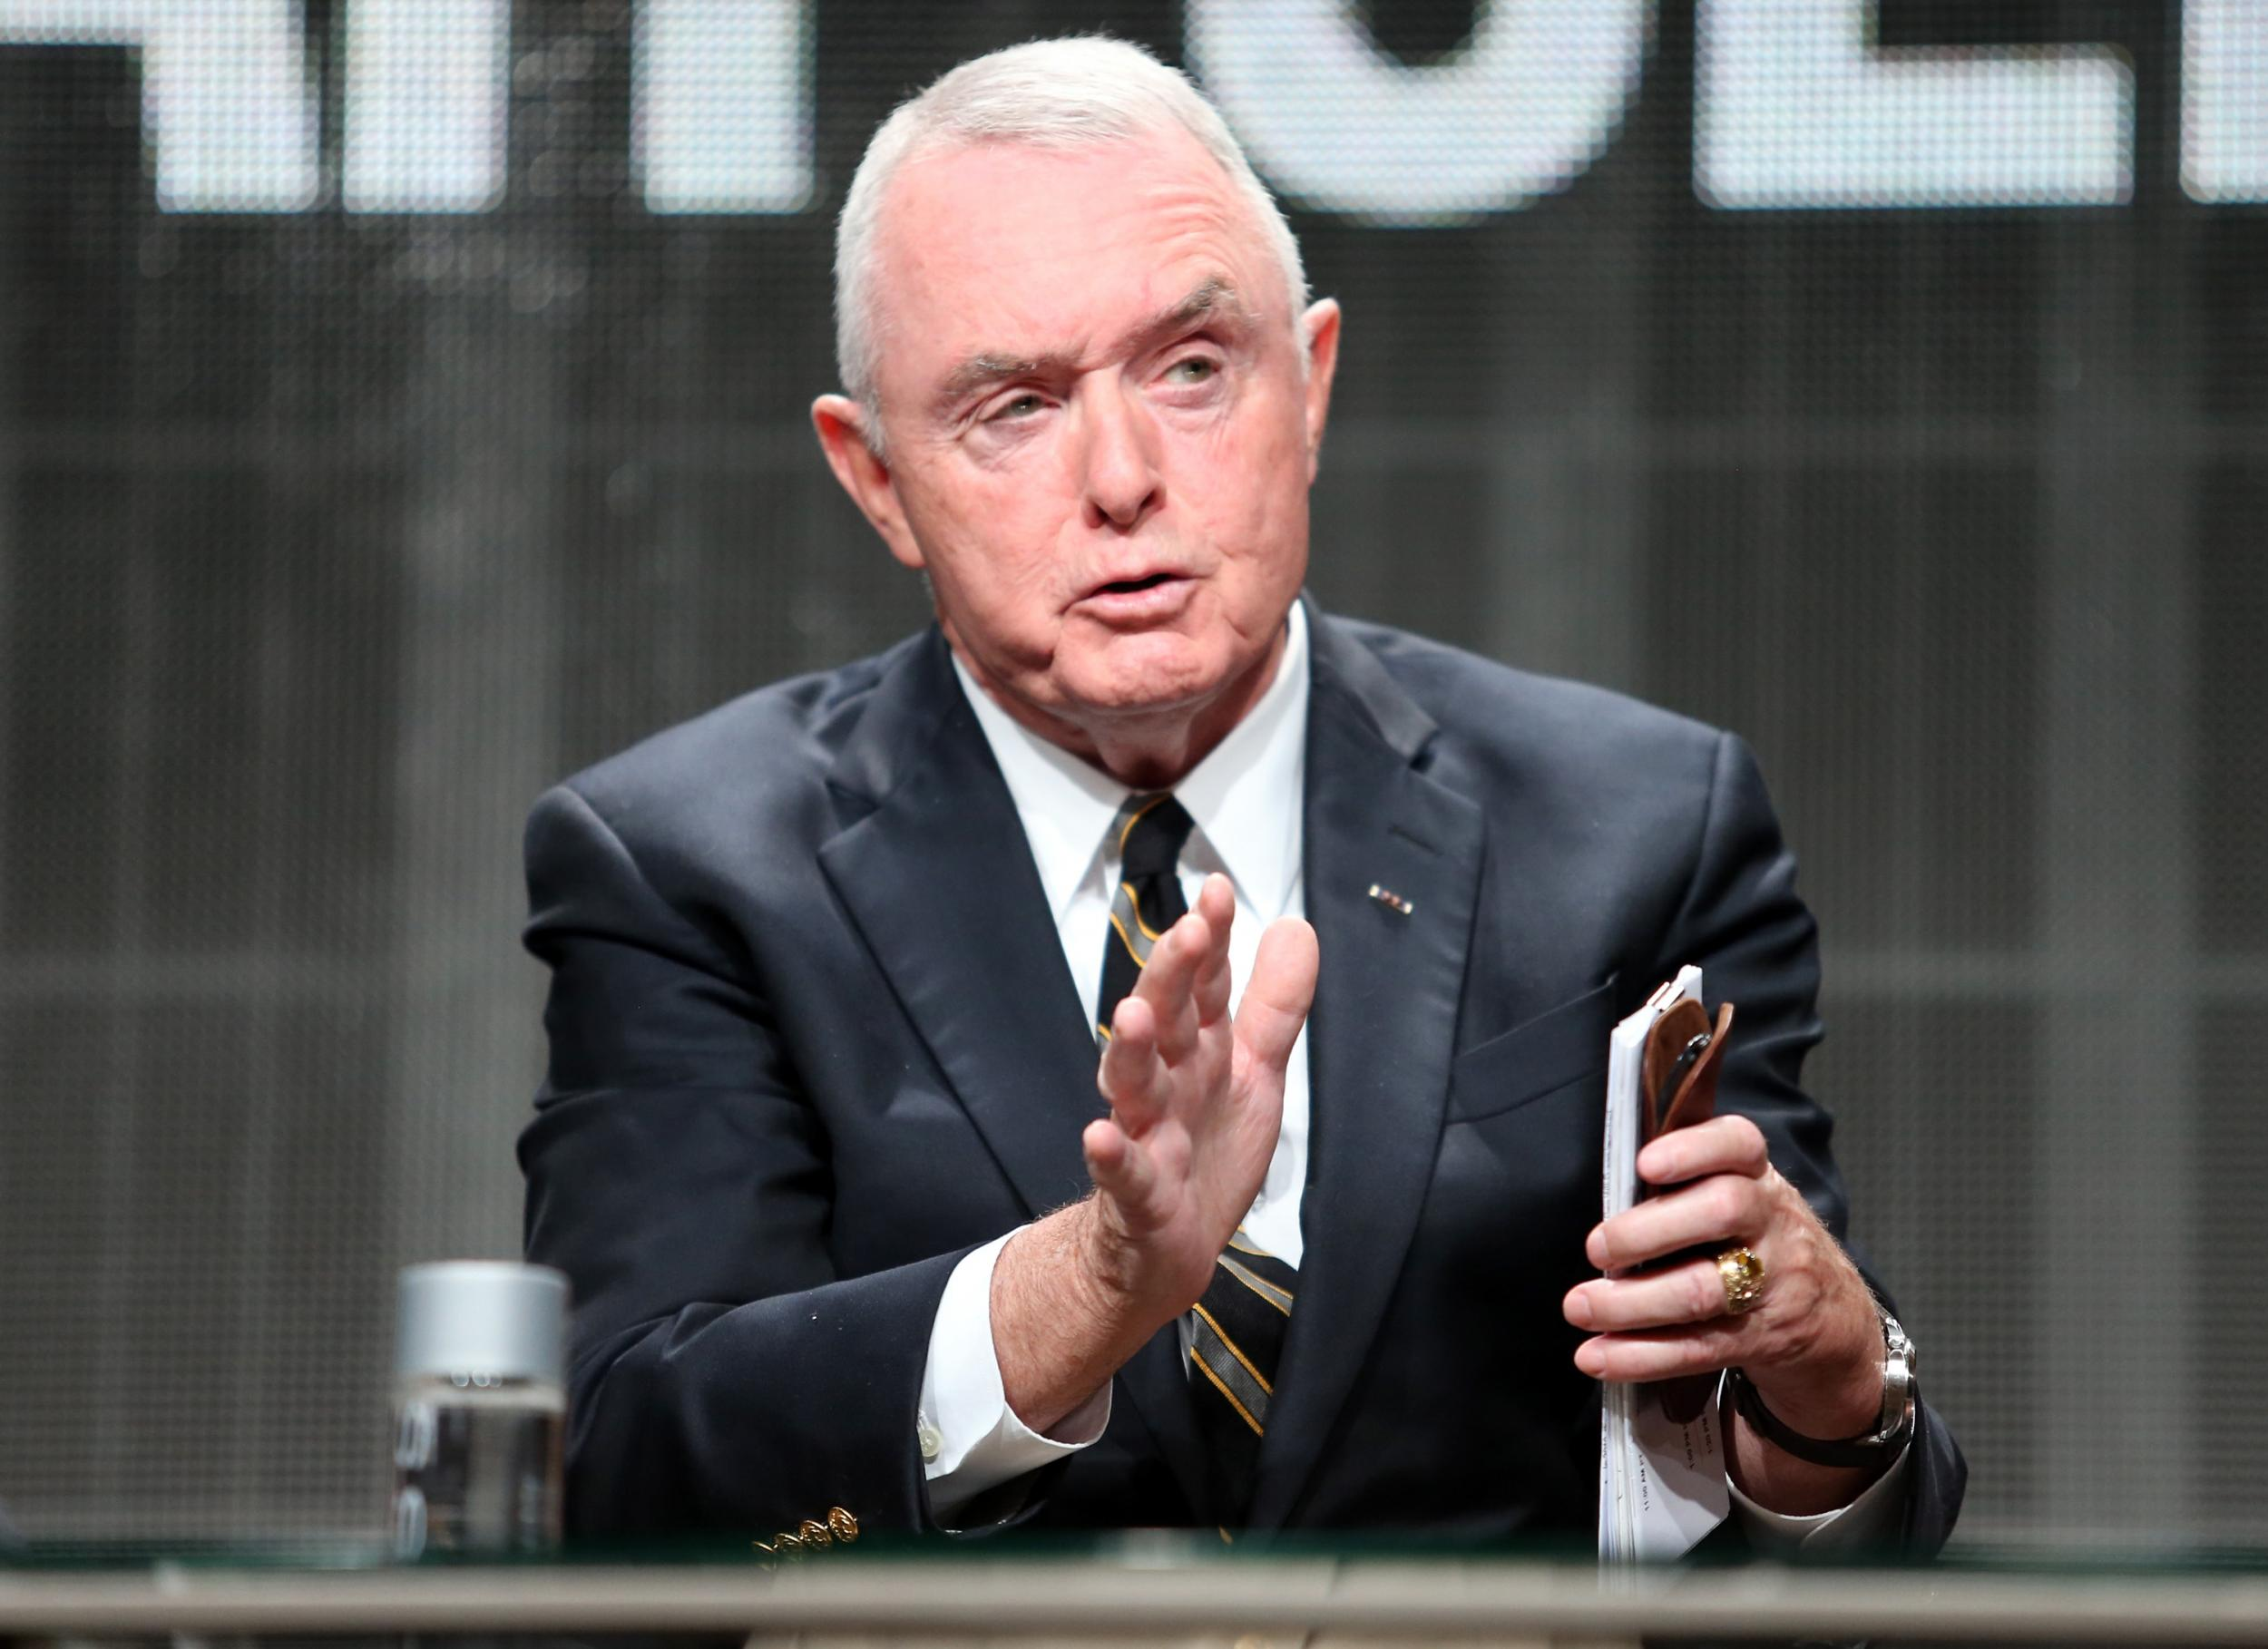 gen barry mccaffrey Retired gen barry mccaffrey, a decorated combat veteran and former drug czar during the clinton administration, will lecture on leadership.